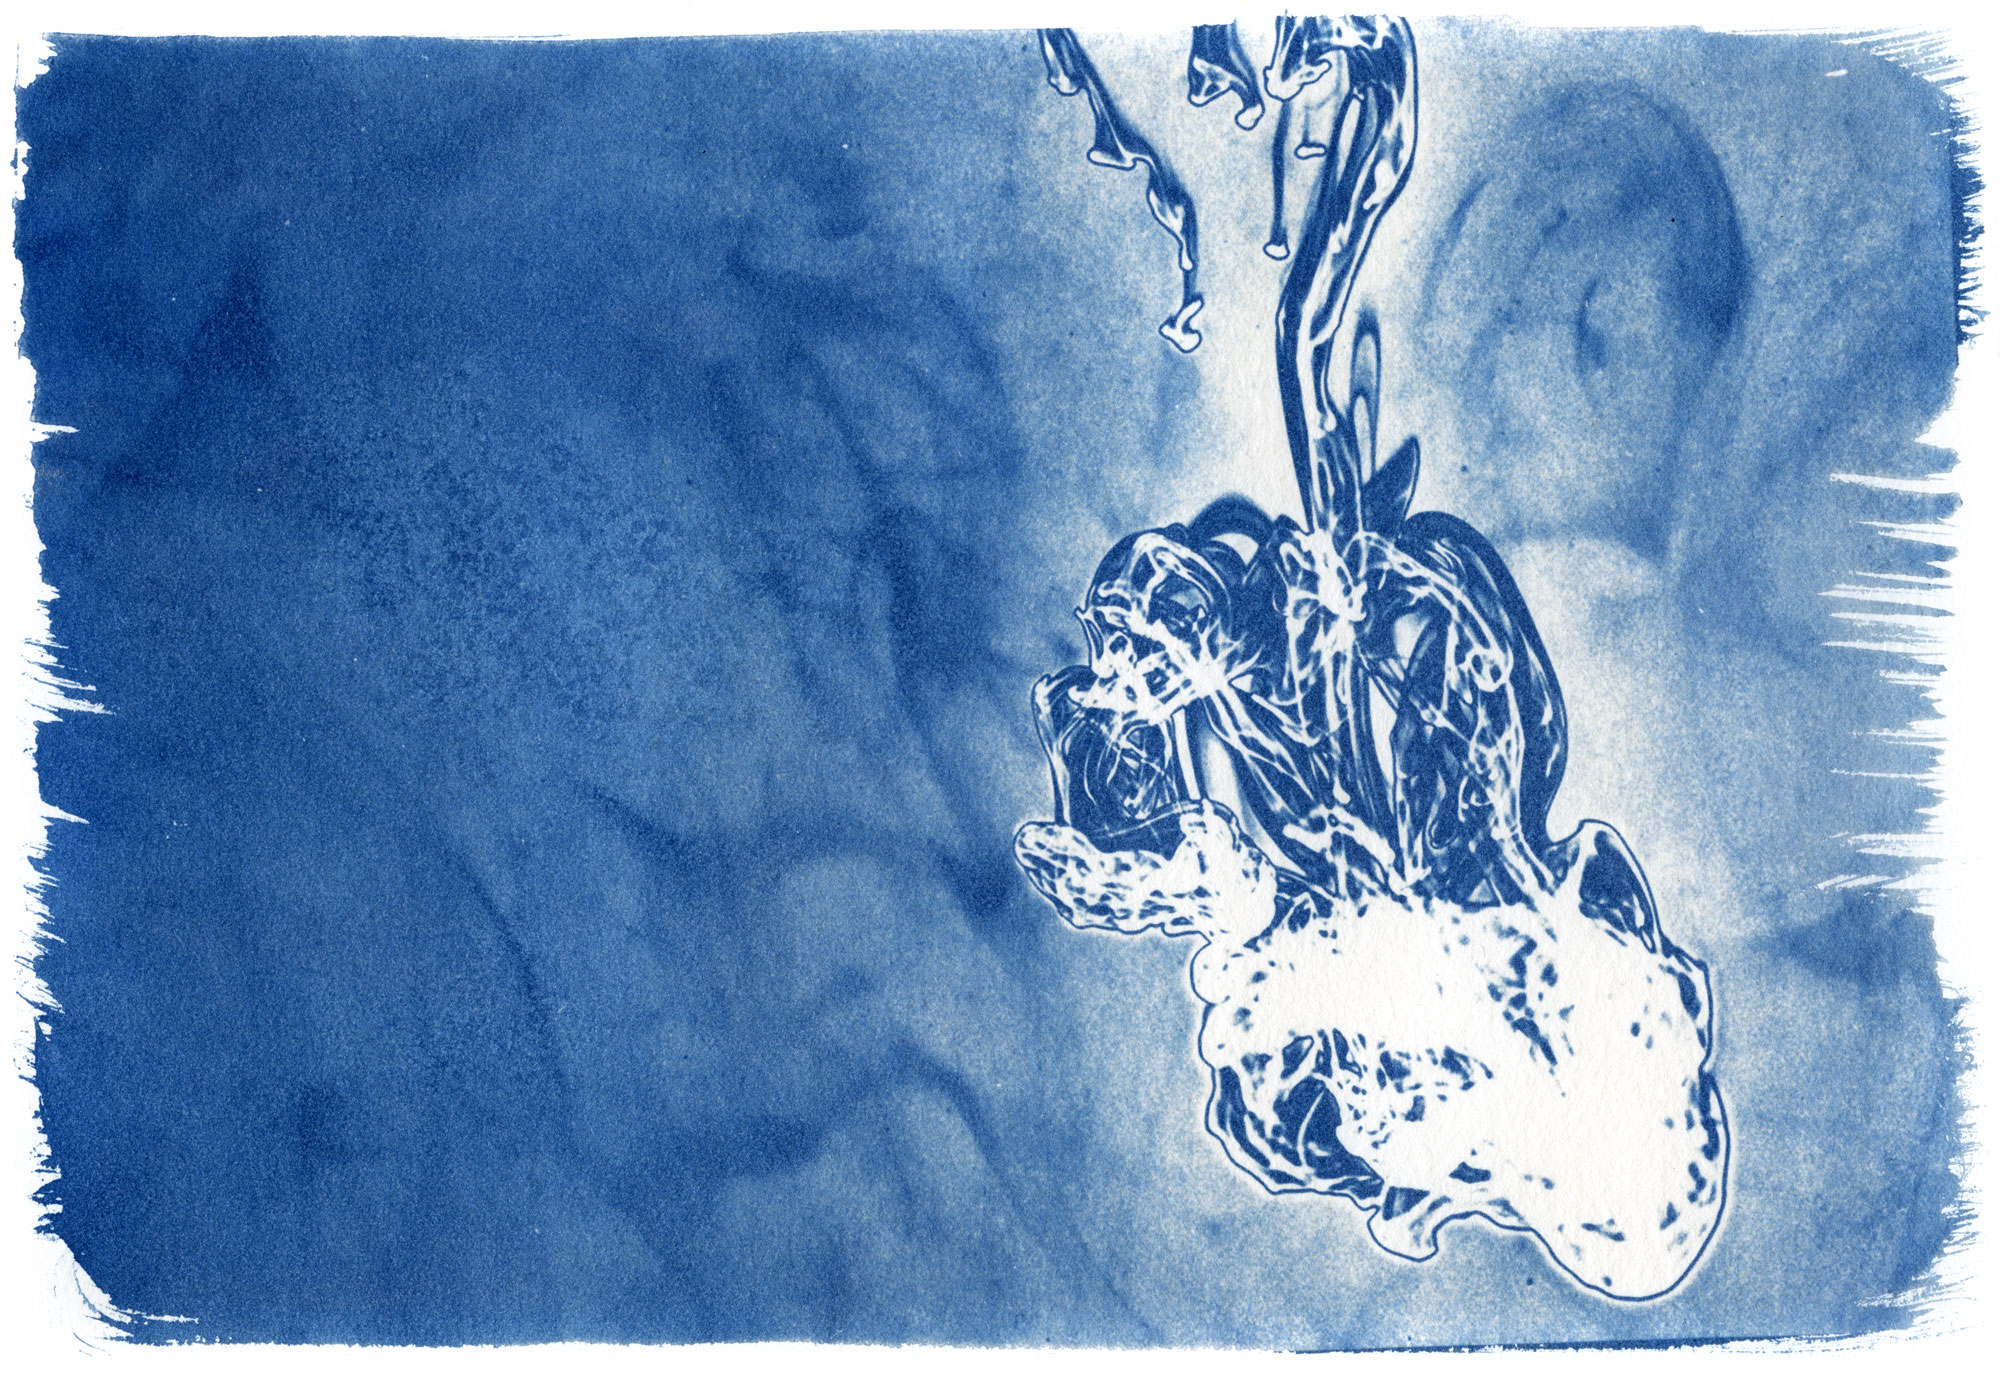 Legacy: Cyanotype by Alex Kay